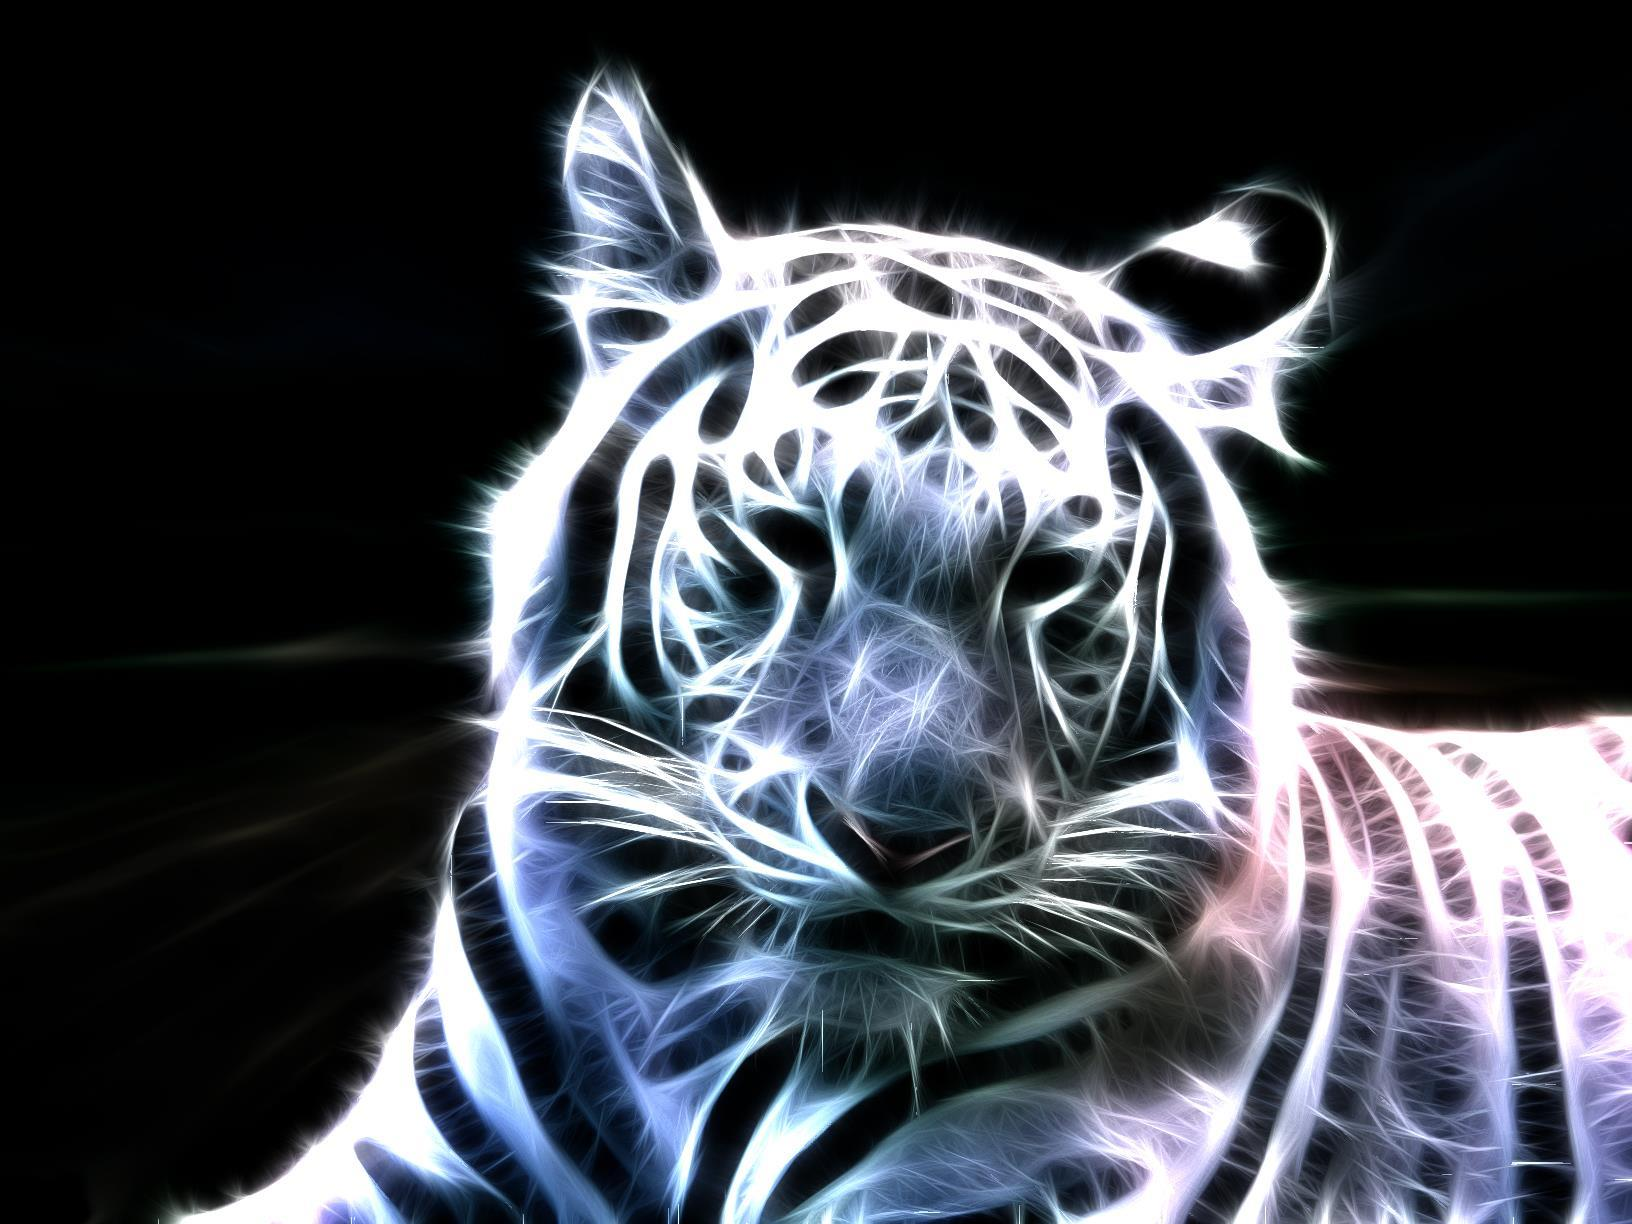 tigre-fonds-d-ecran-effets-lumiere-et-retouche-photo_07